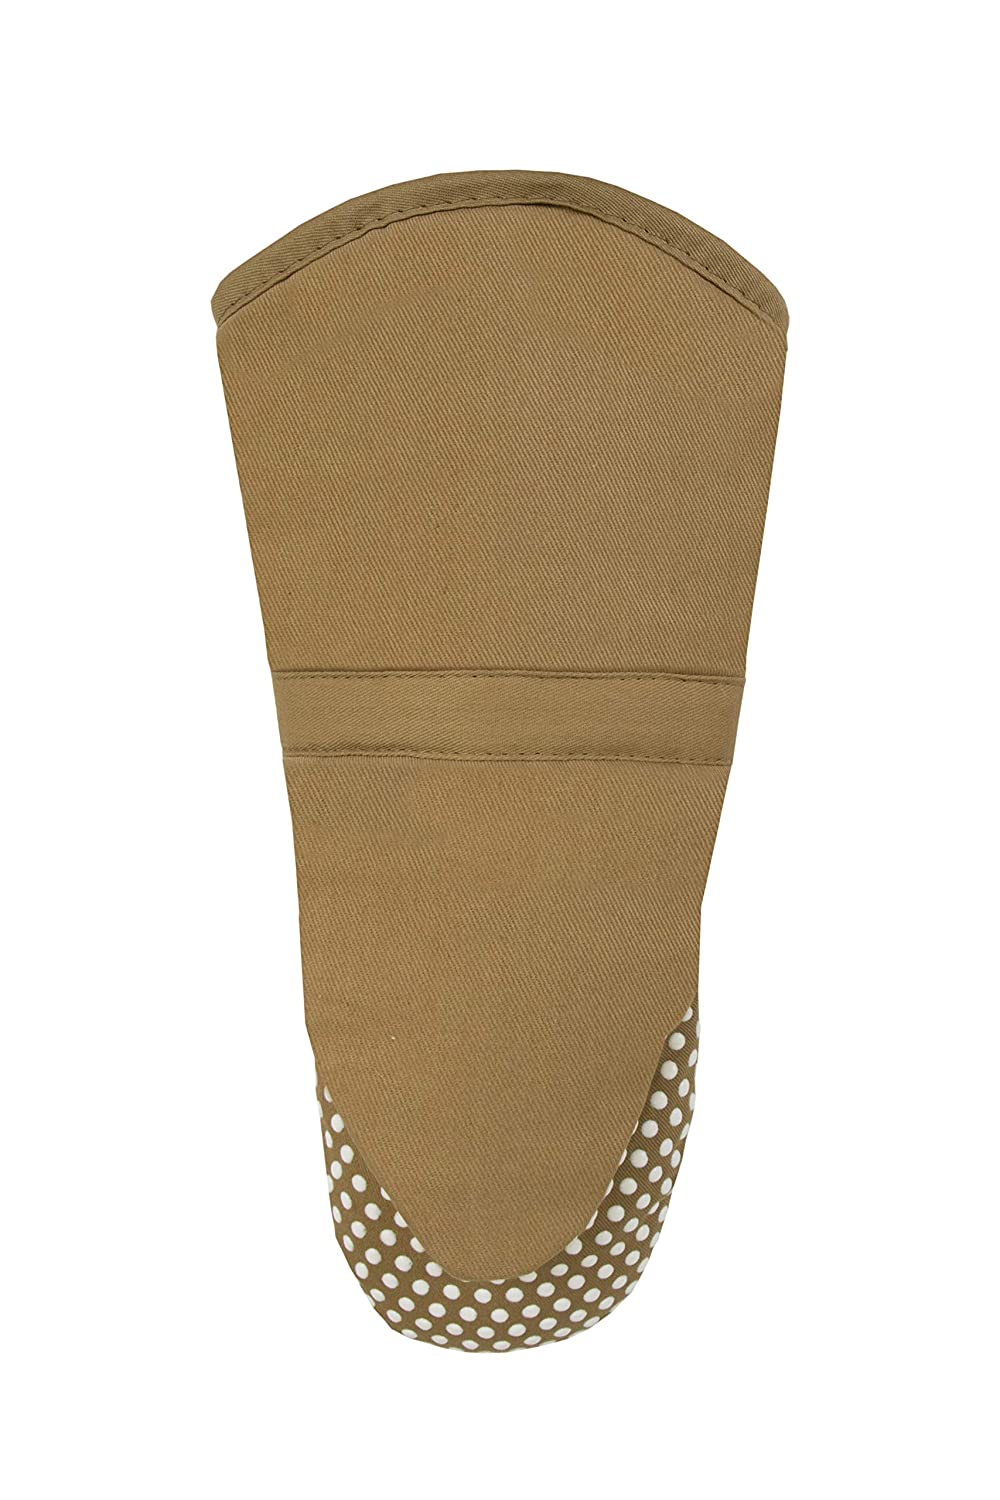 RITZ Royale Cotton Twill Puppet Oven Mitt with Silicone Dot Non-Slip Grip, 13-inch, Mocha Brown